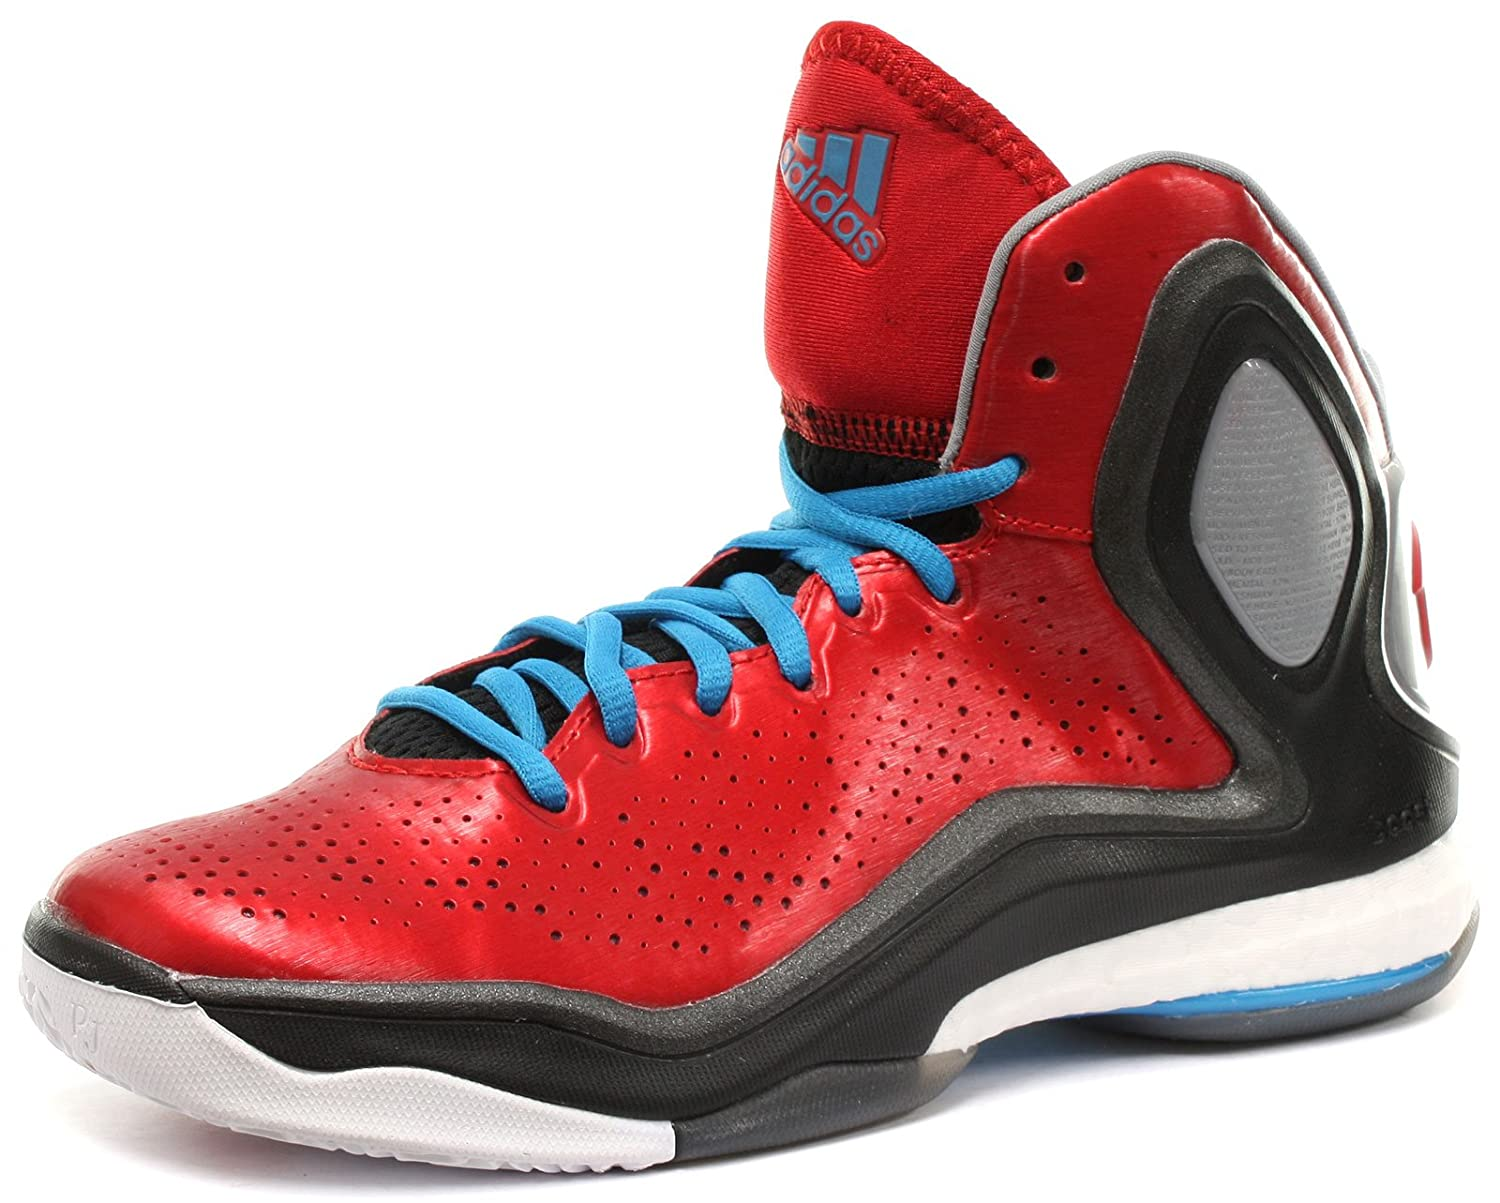 low priced adf7d a690a adidas Derrick Rose 5 Boost Junior Basketball Shoes Sneakers, Size 3.5   Amazon.co.uk  Shoes   Bags